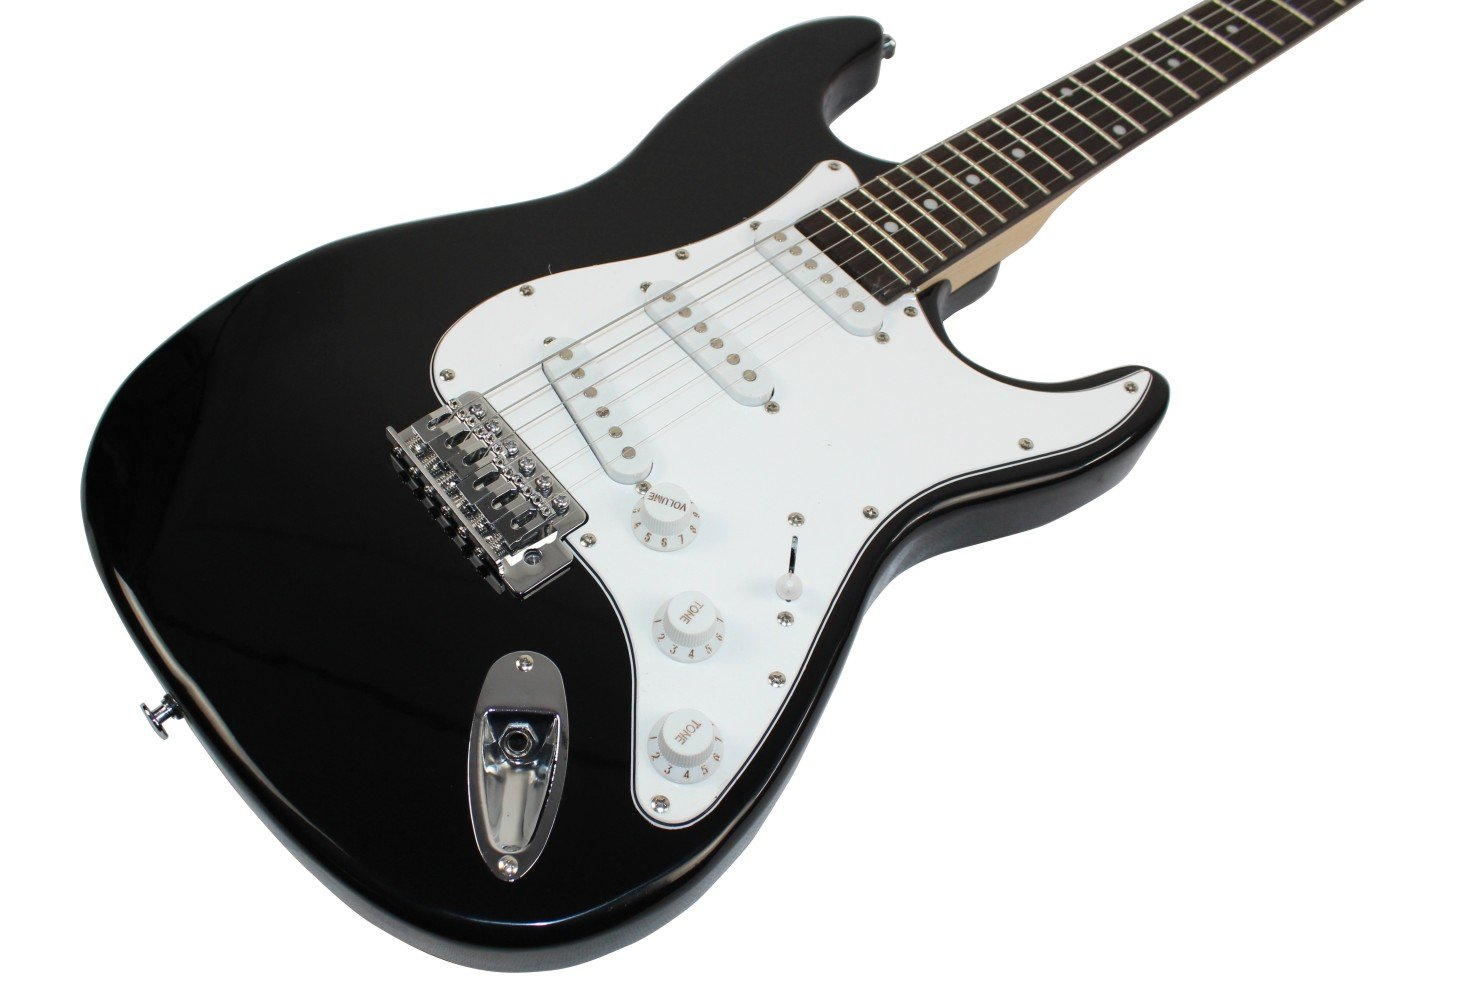 Amazon.com: Stedman Pro Beginner Series 39-Inch Electric Guitar with 10-Watt Amp, Case, Strap, Cable, Picks, Electronic Tuner, Stringwinder and Polish Cloth ...